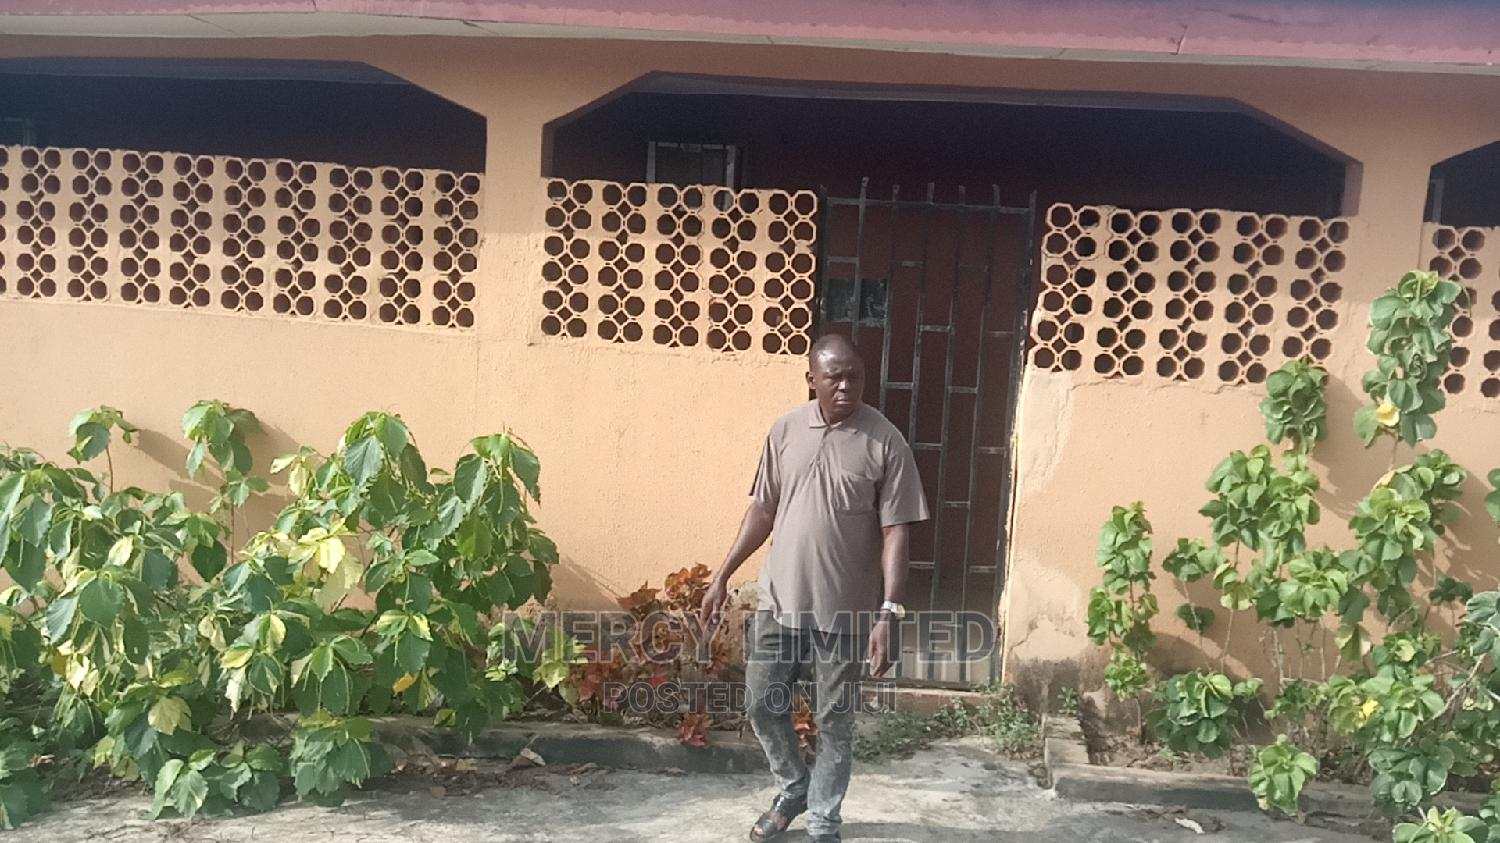 Hotel For Sale | Commercial Property For Sale for sale in Abeokuta North, Ogun State, Nigeria